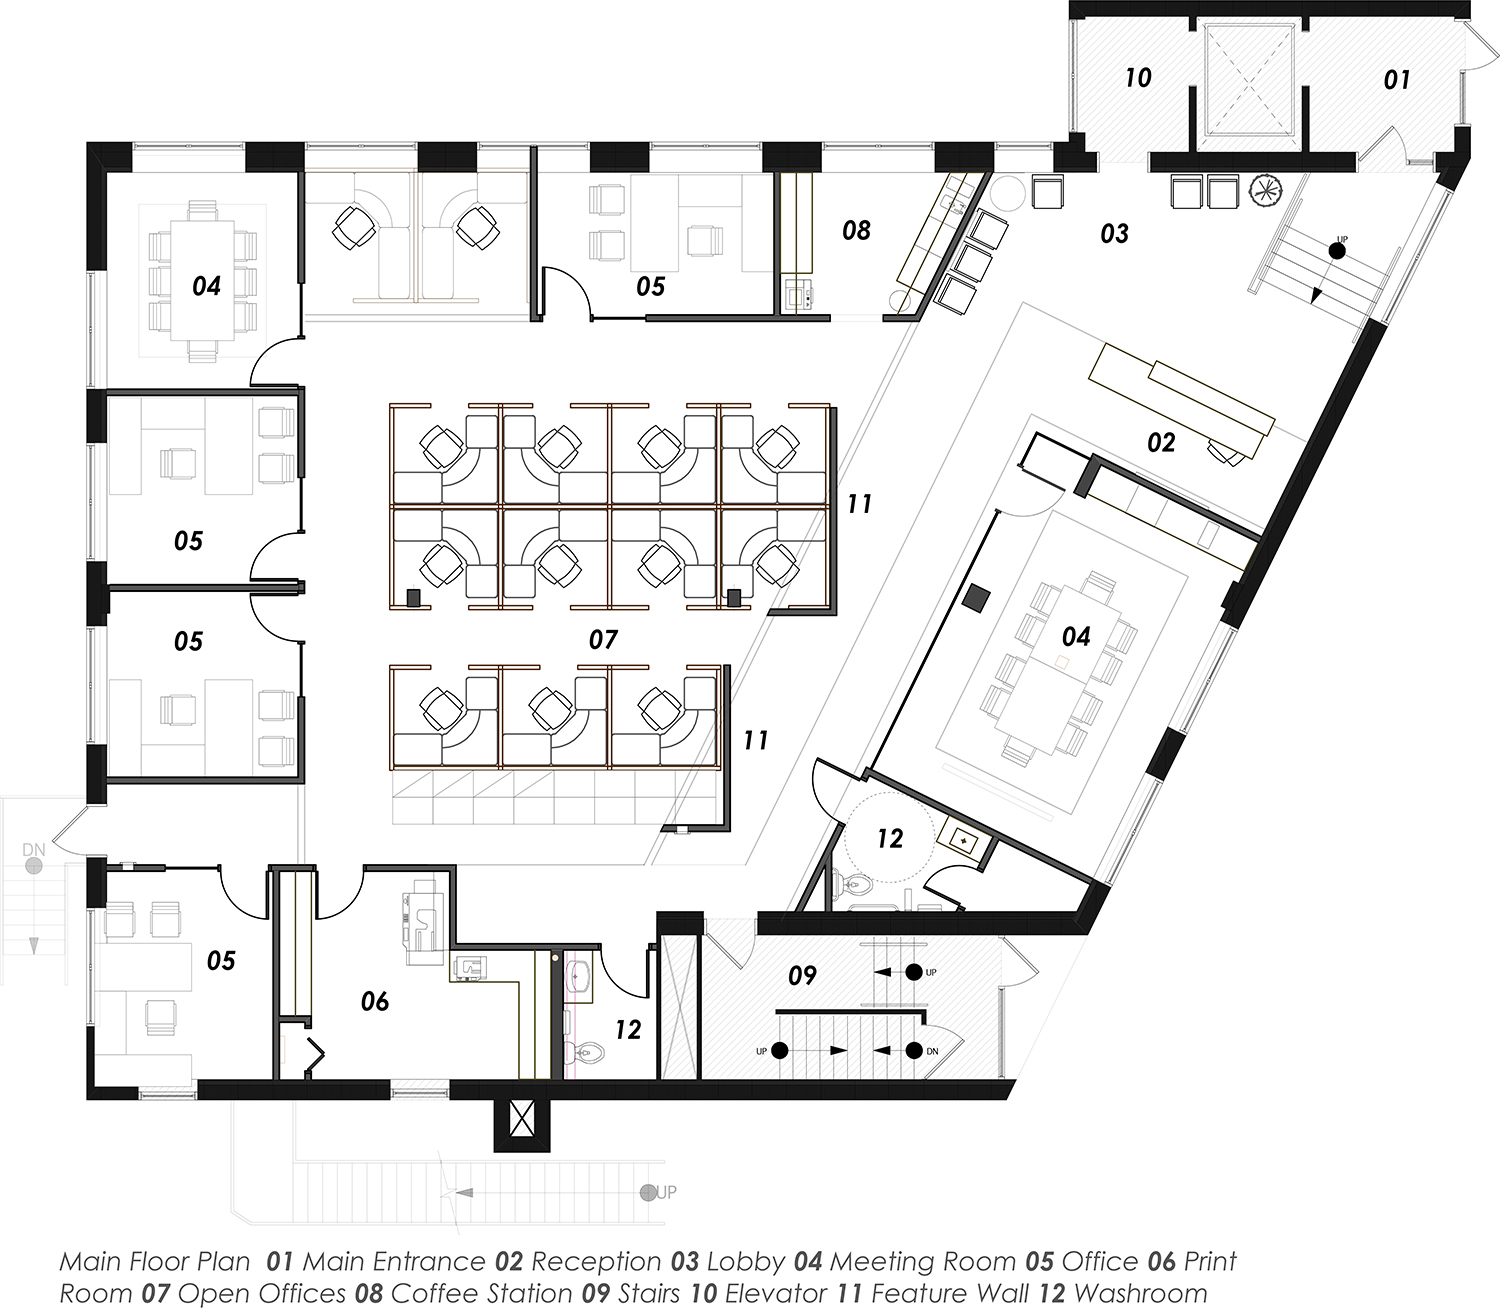 Exchange-Group-Offices-Main-Floor-Plan.jpg